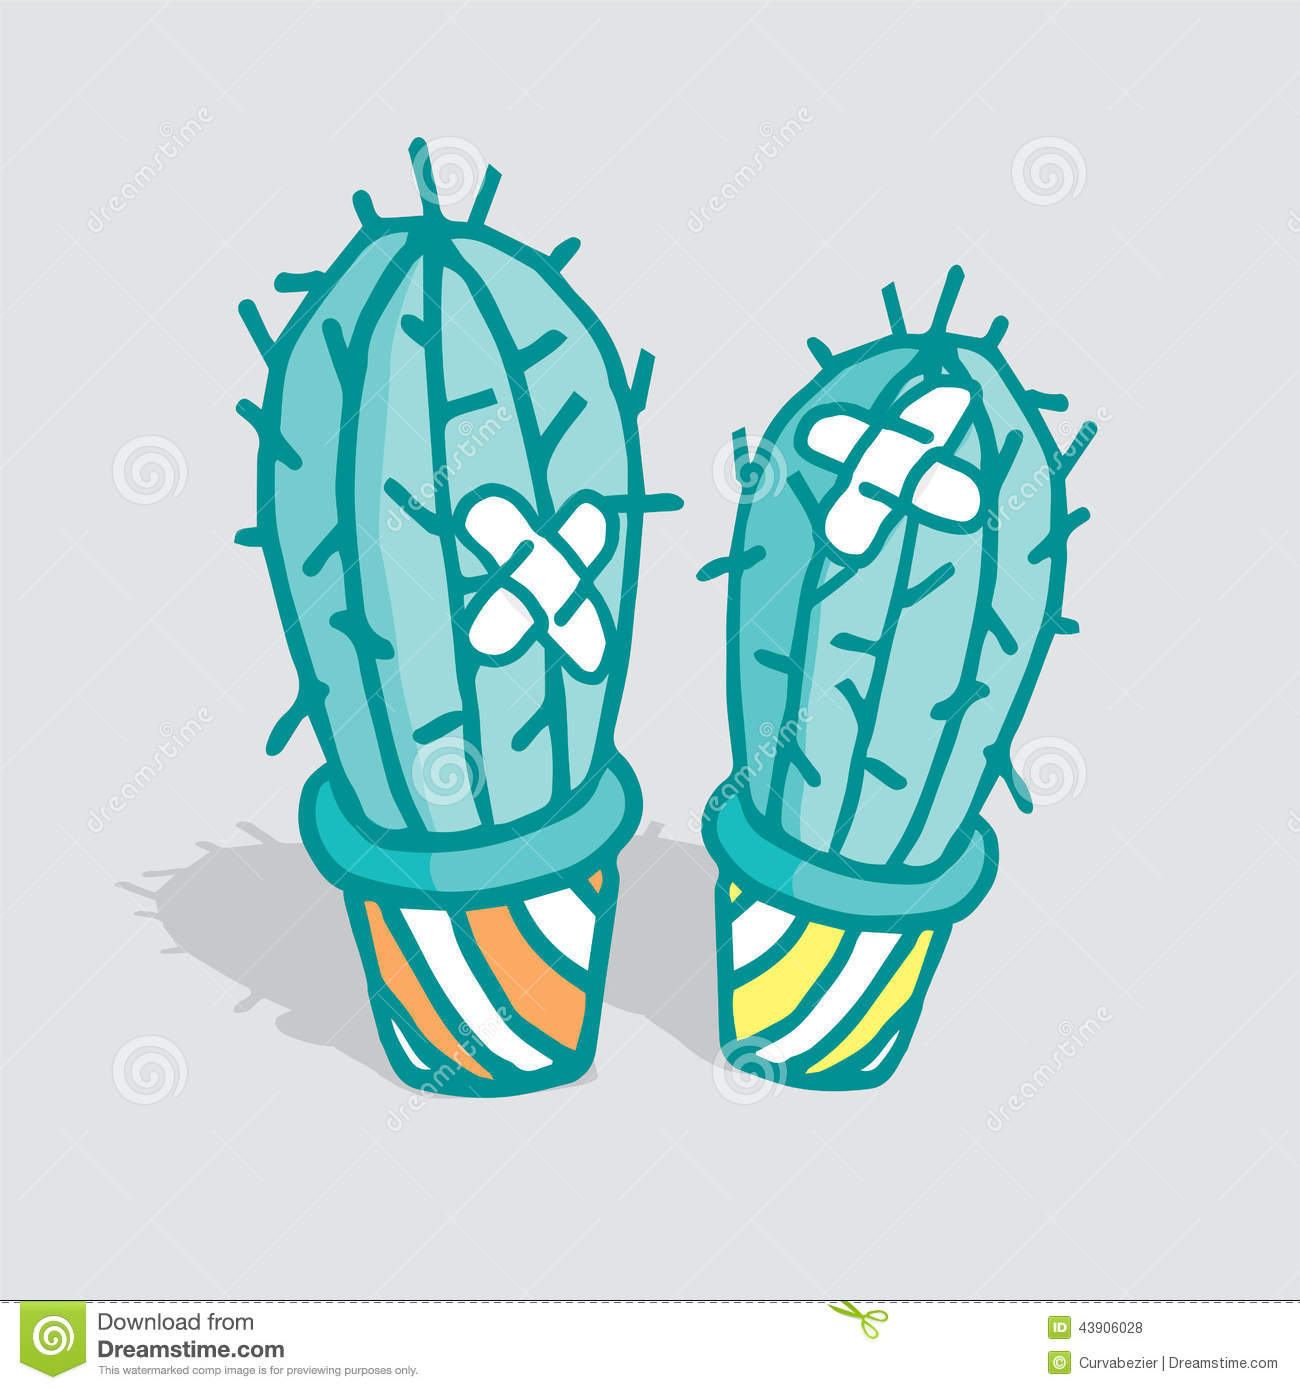 Love Hurts Cactus With Adhesive Bandage Stock Vector Illustration